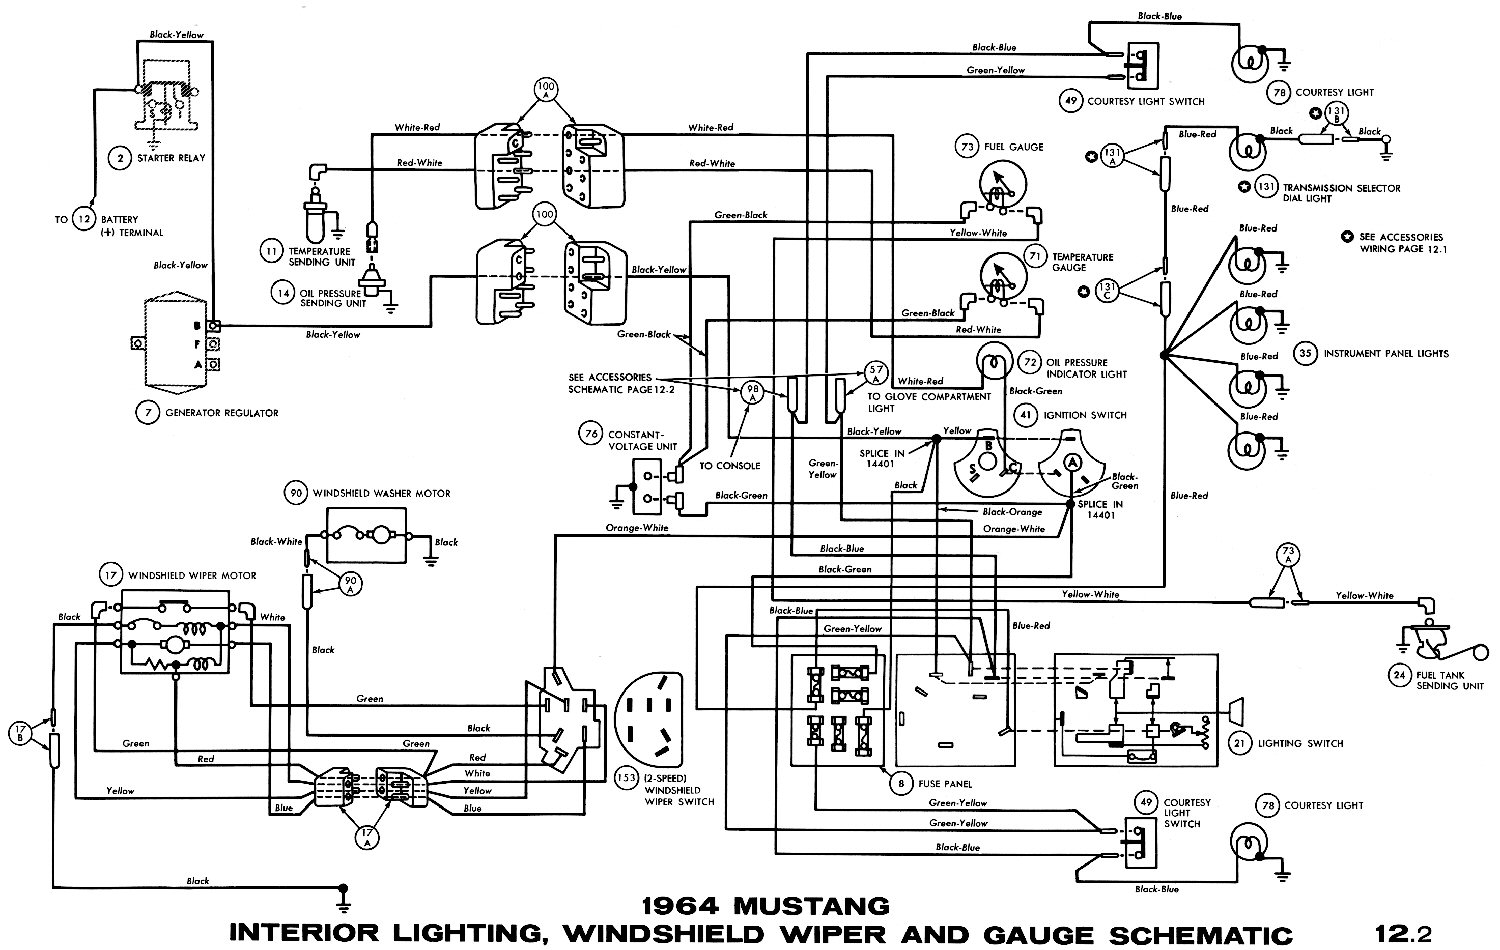 1972 Ford Mustang Tach Wiring | Wiring Diagram Mallory Tachometer Wiring Schematic on faria tachometer schematic, tachometer connectors, tachometer installation, stewart warner tachometer sender schematic, auto tachometer schematic, tachometer gauges, tachometer repair,